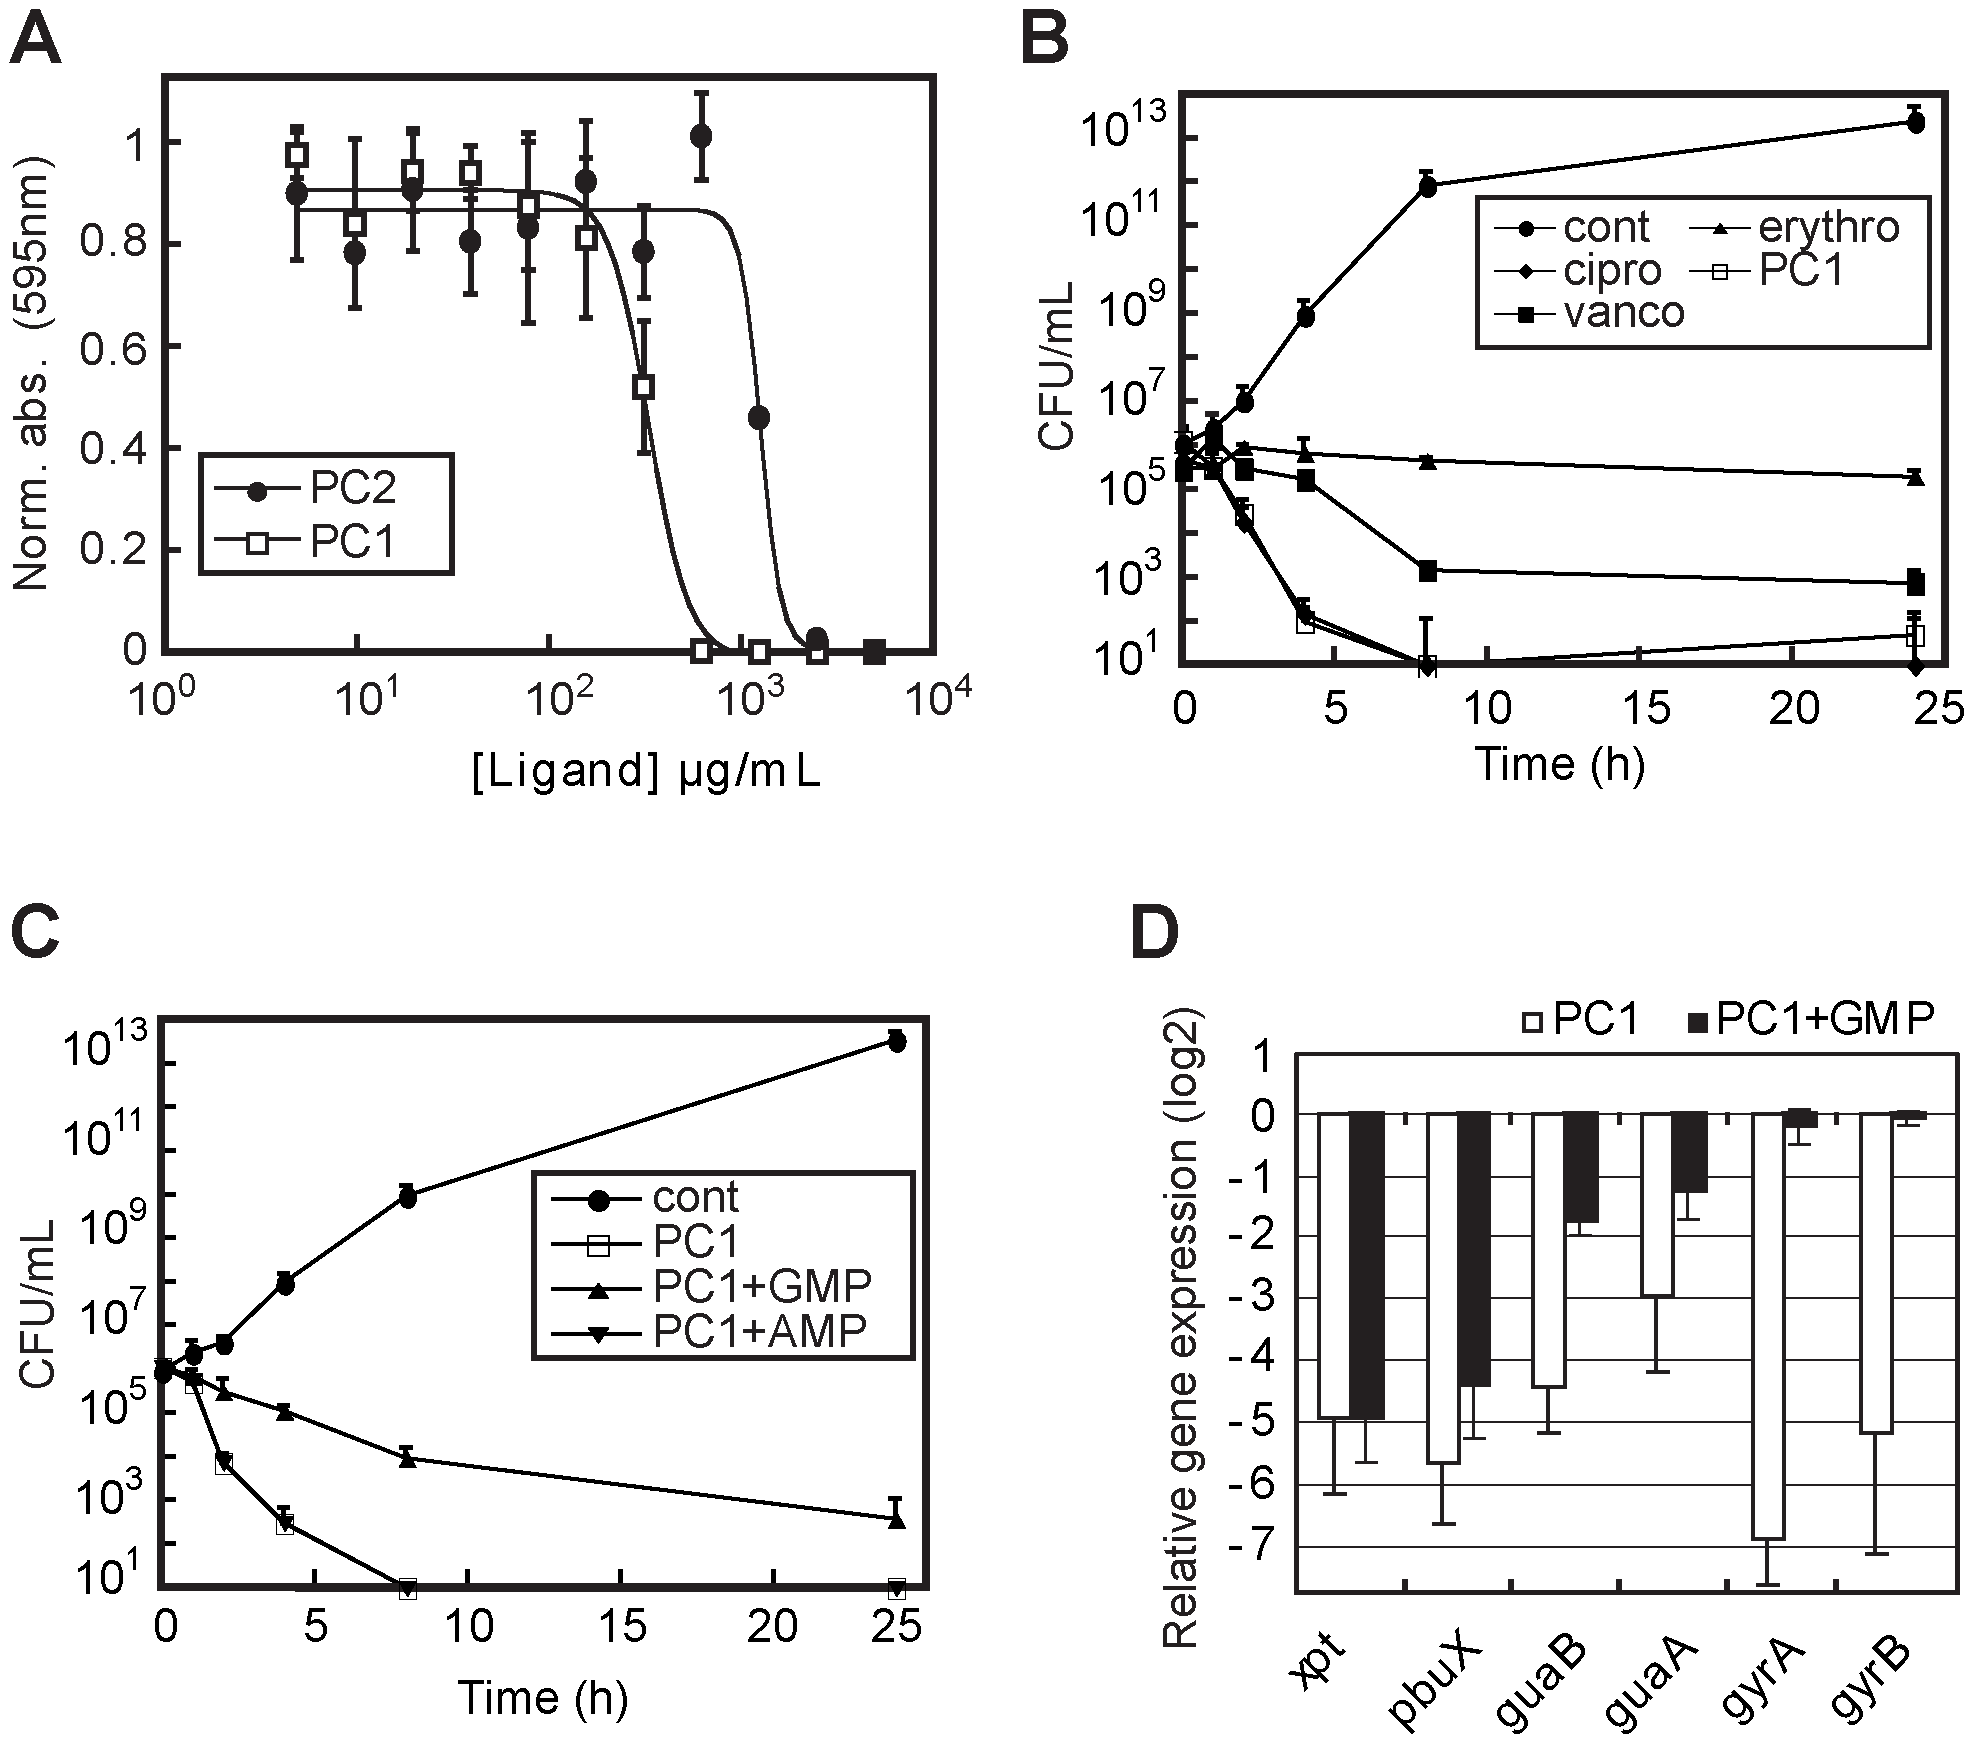 PC1 shows bactericidal activity through cellular GMP depletion.